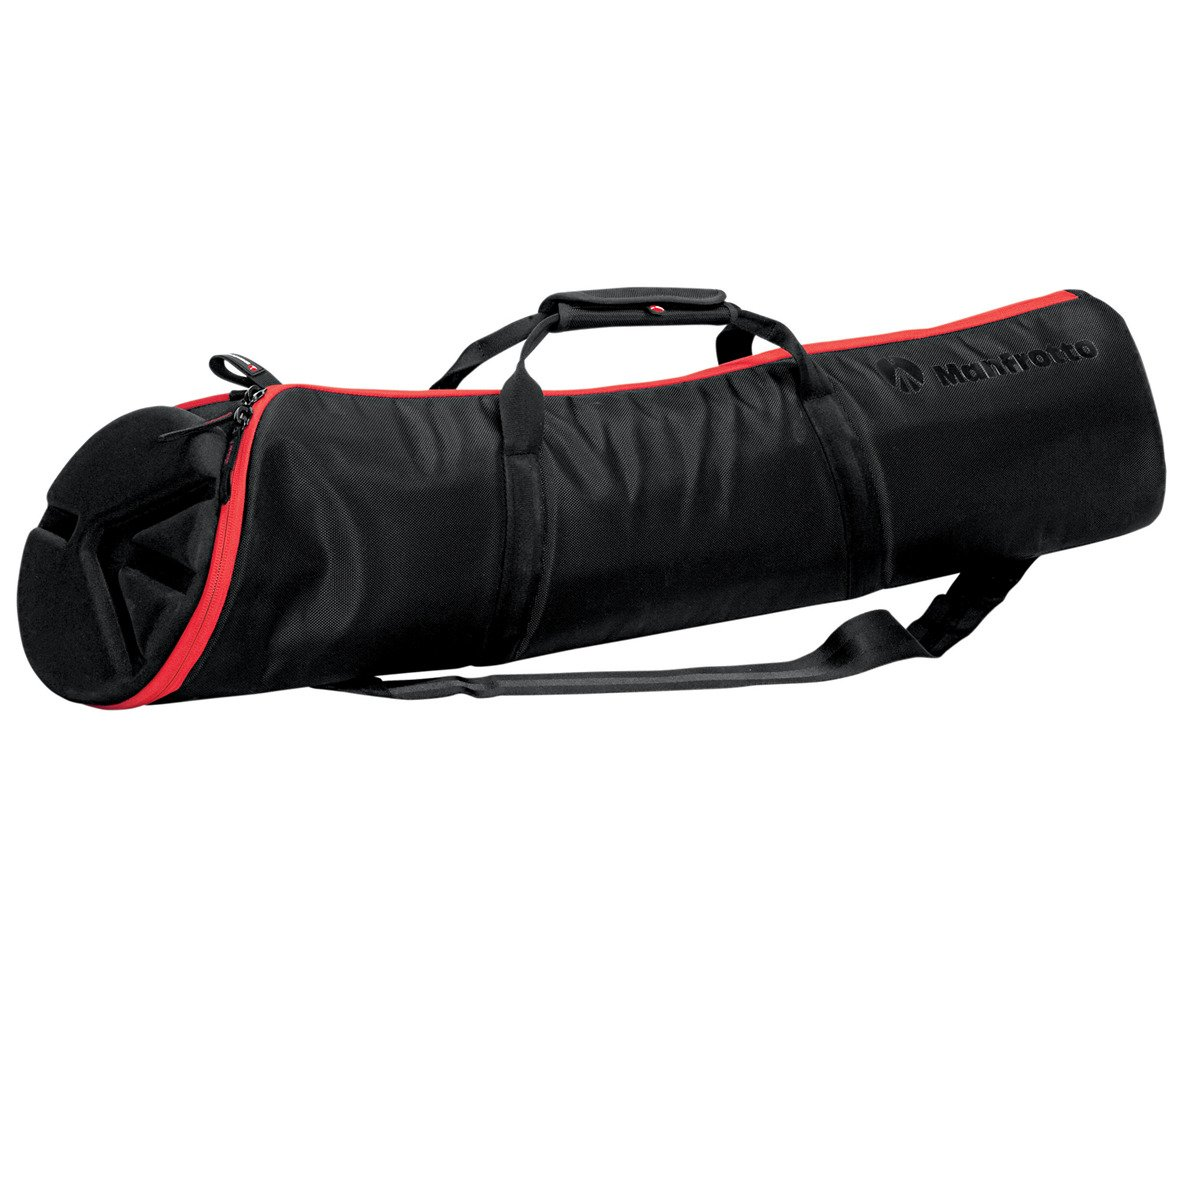 Manfrotto MB MBAG90PN Padded 90 cm Tripod Bag by Manfrotto